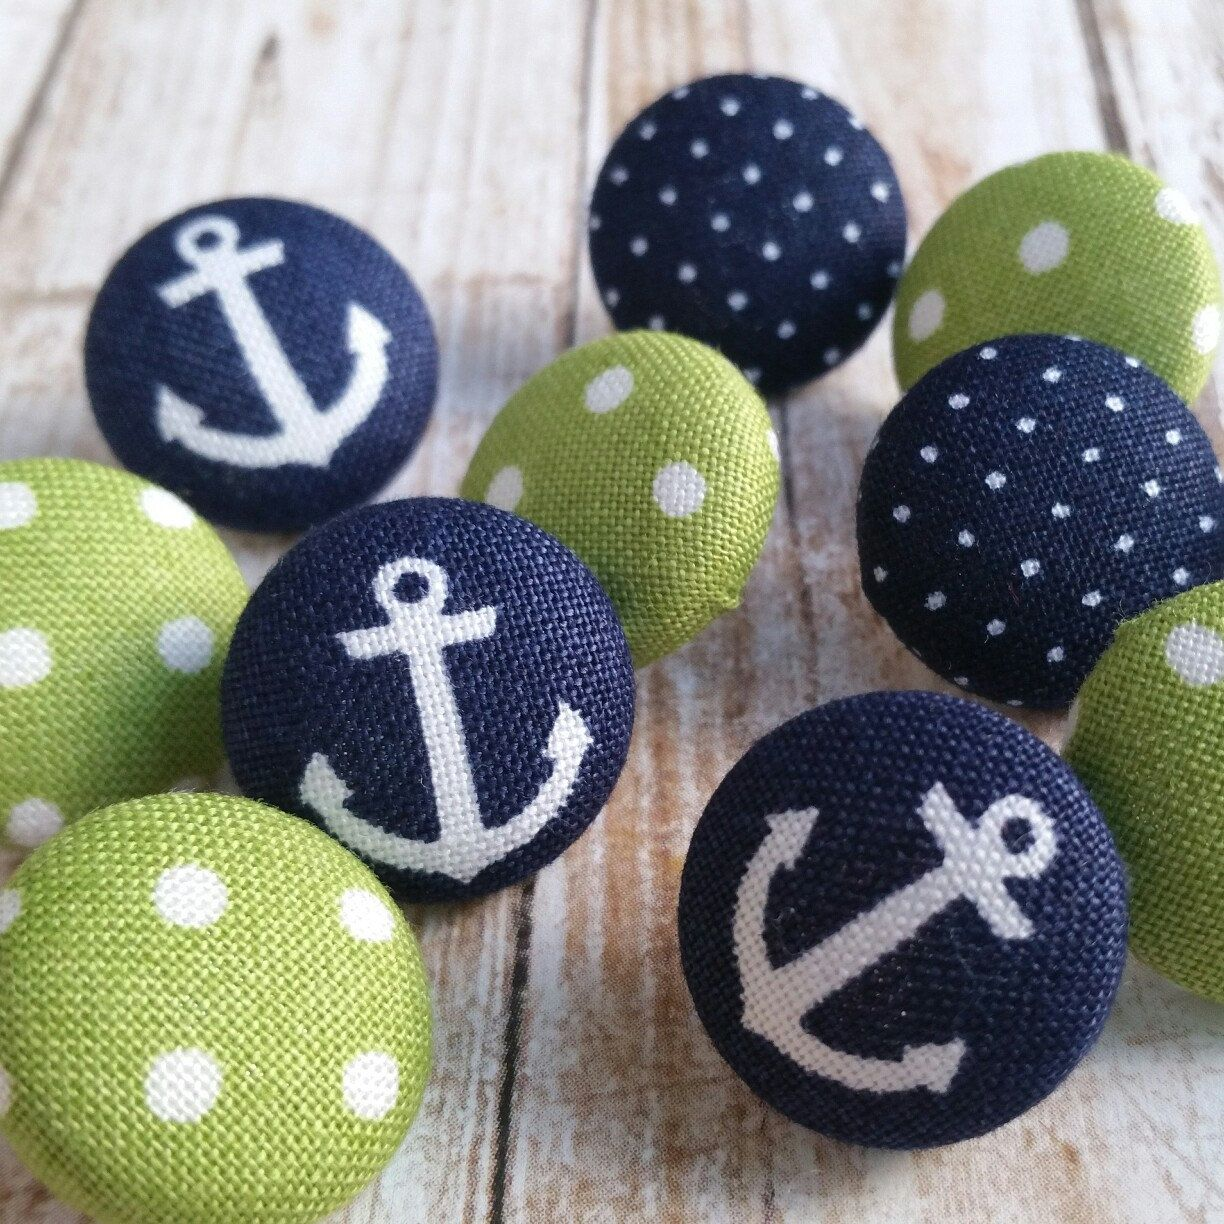 Sail away with these fun pushpins!